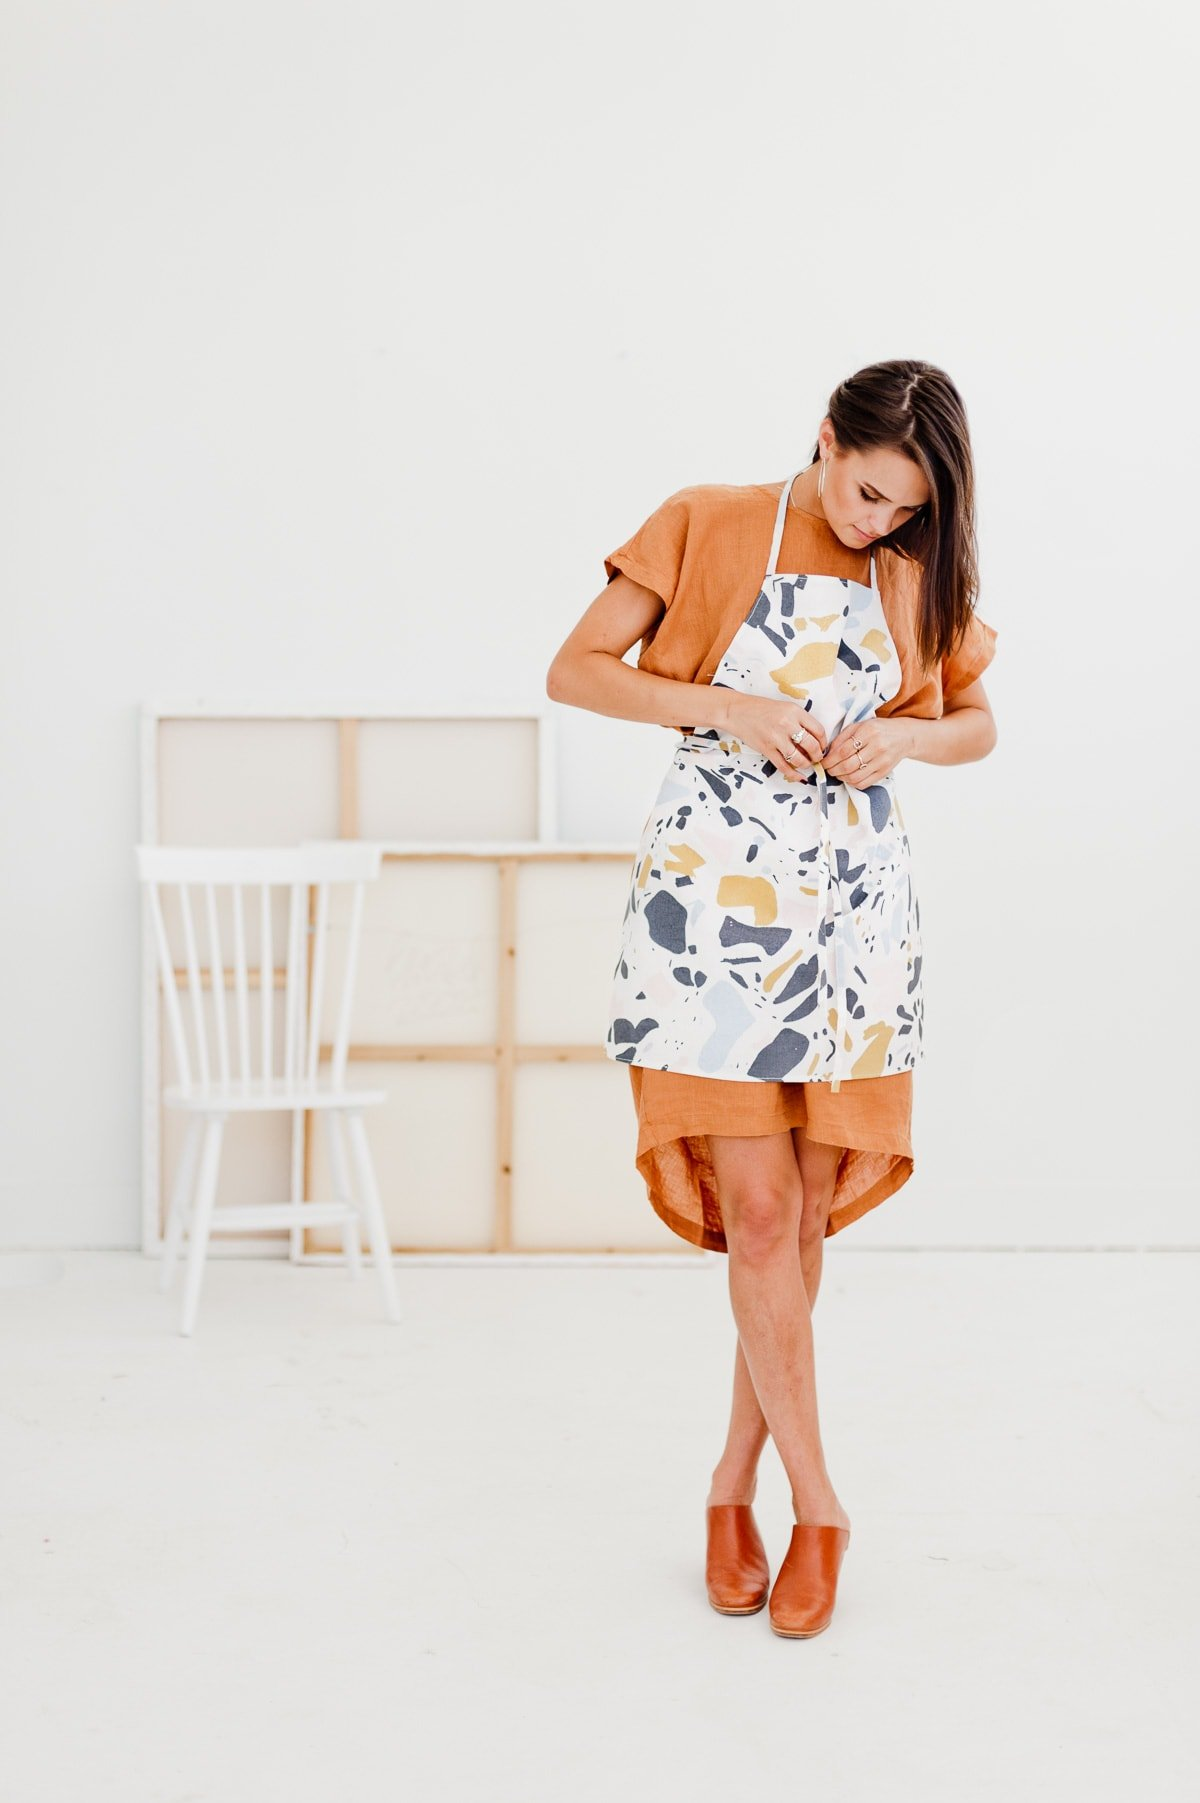 Woman tying terrazzo print apron in all white artist loft.